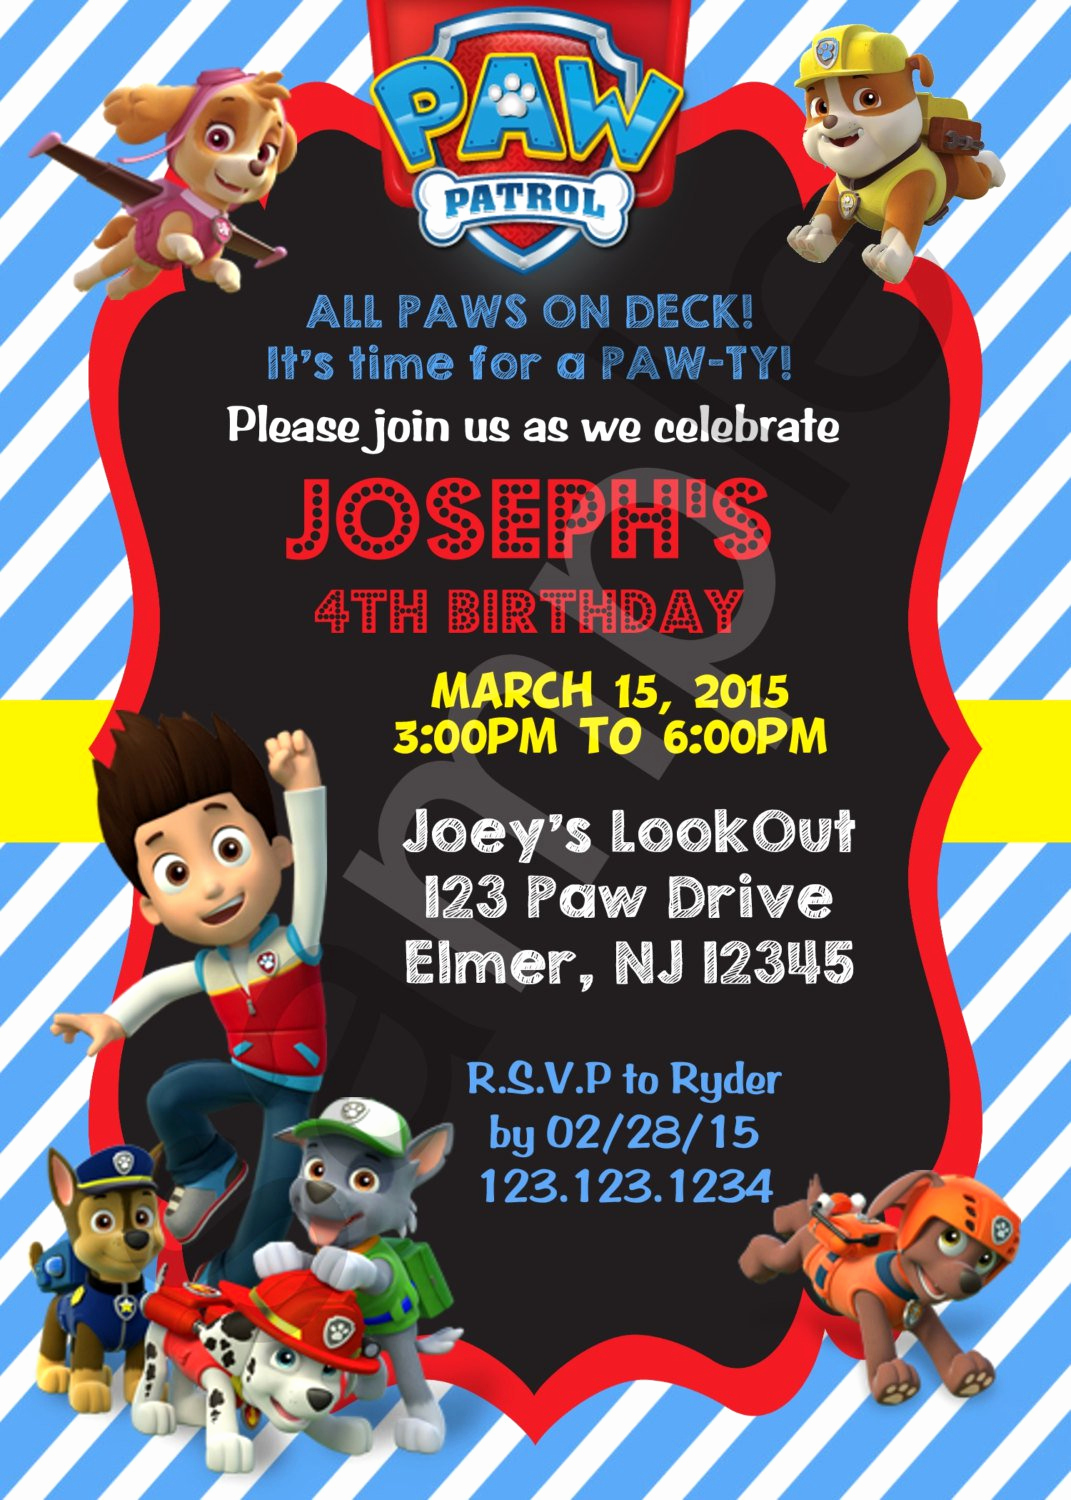 Paw Patrol Invitation Templates Unique Paw Patrol Birthday Invitations Paw Patrol Birthday